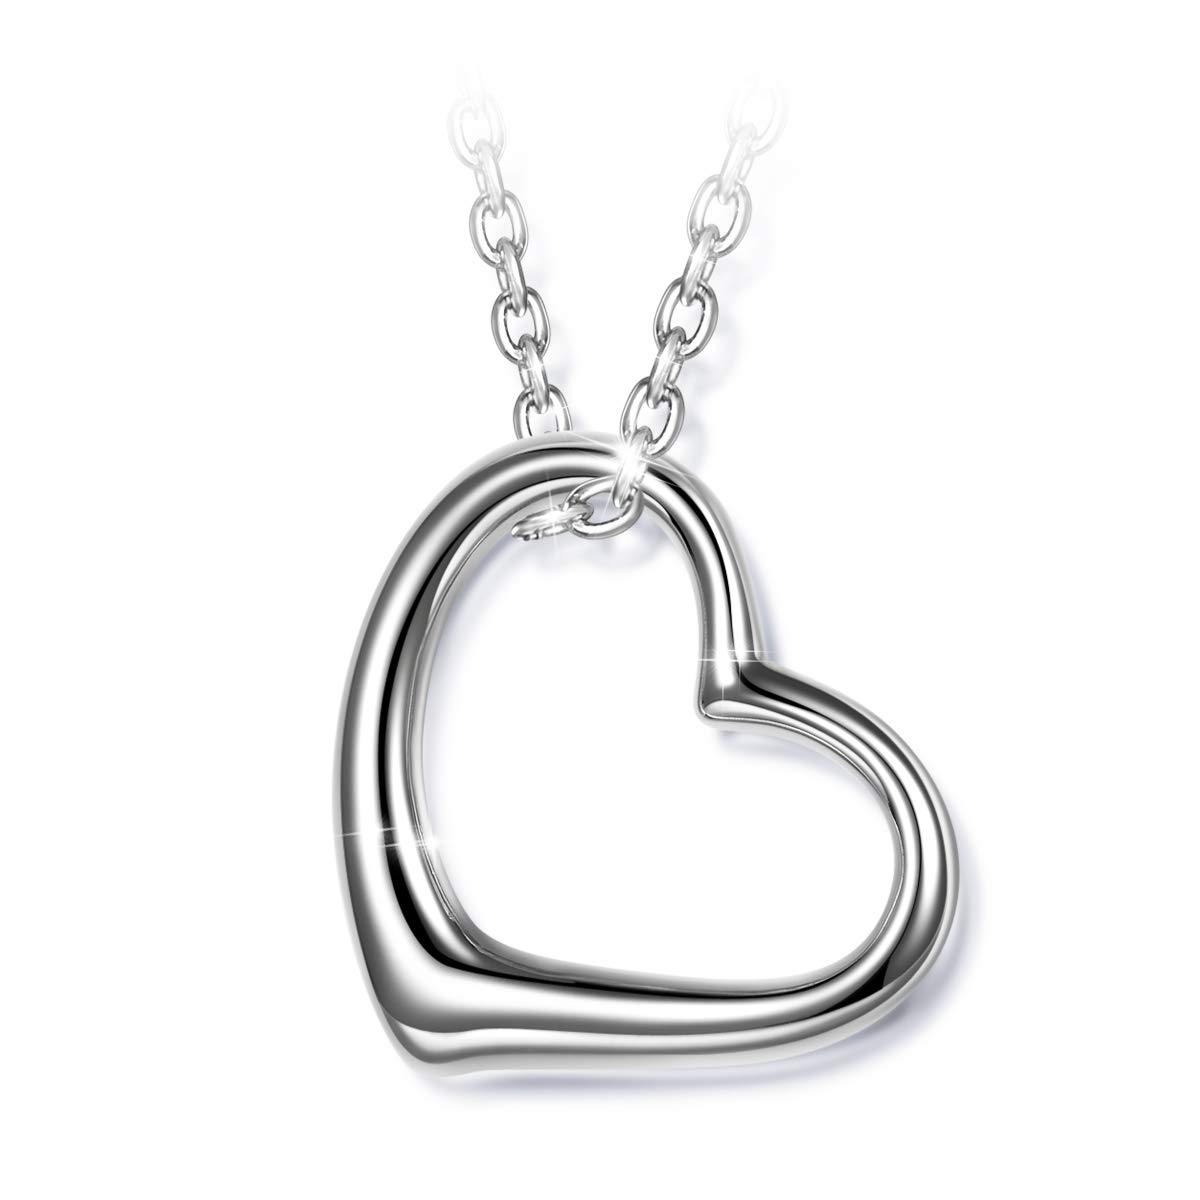 J.NINA 925 Sterling Silver Necklace Heart Necklaces for Women Mother's Day Jewelry for Women Gifts for Mom